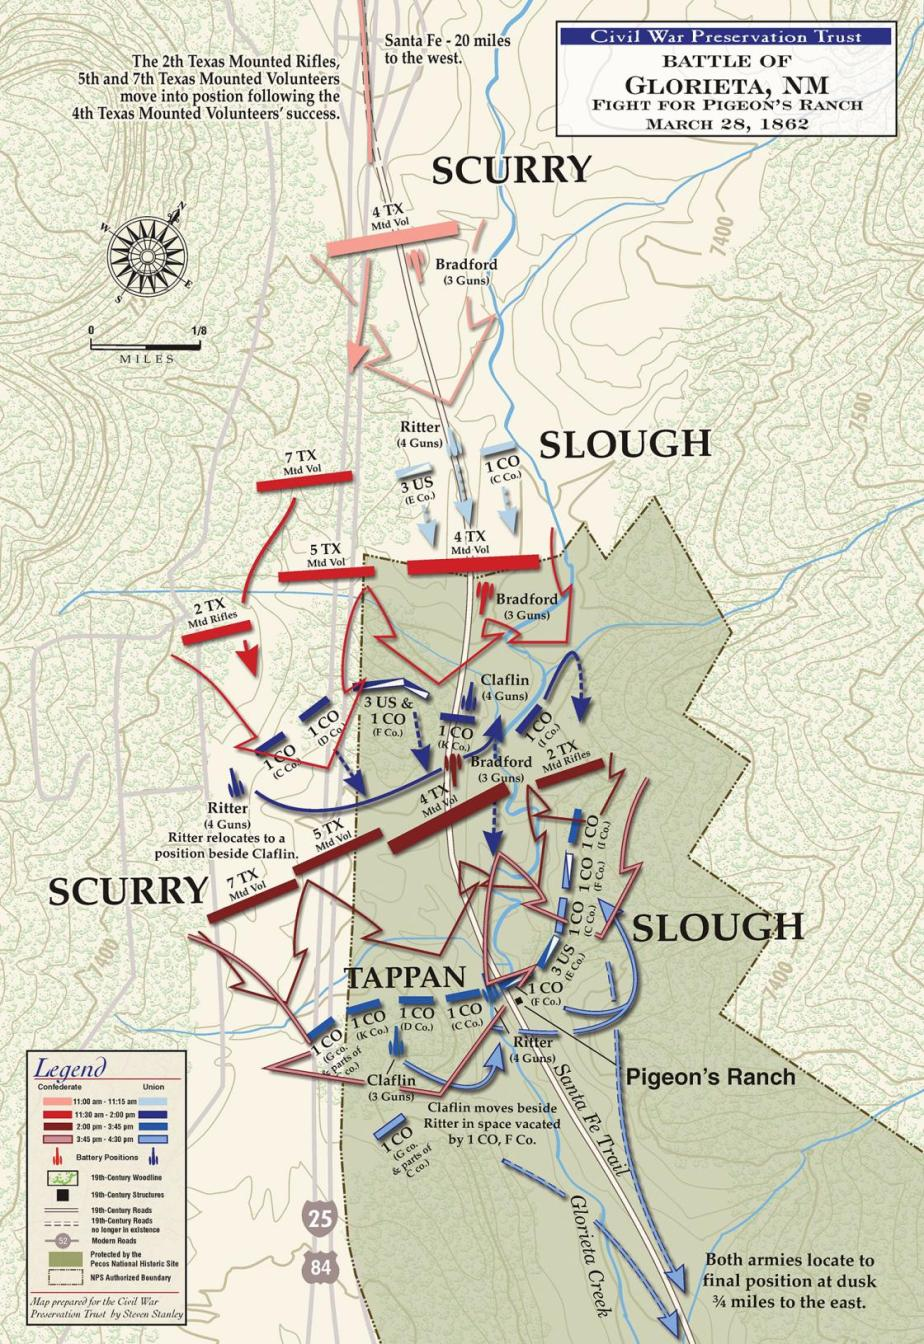 Glorieta Battlefield battle map at Pigeon's Ranch